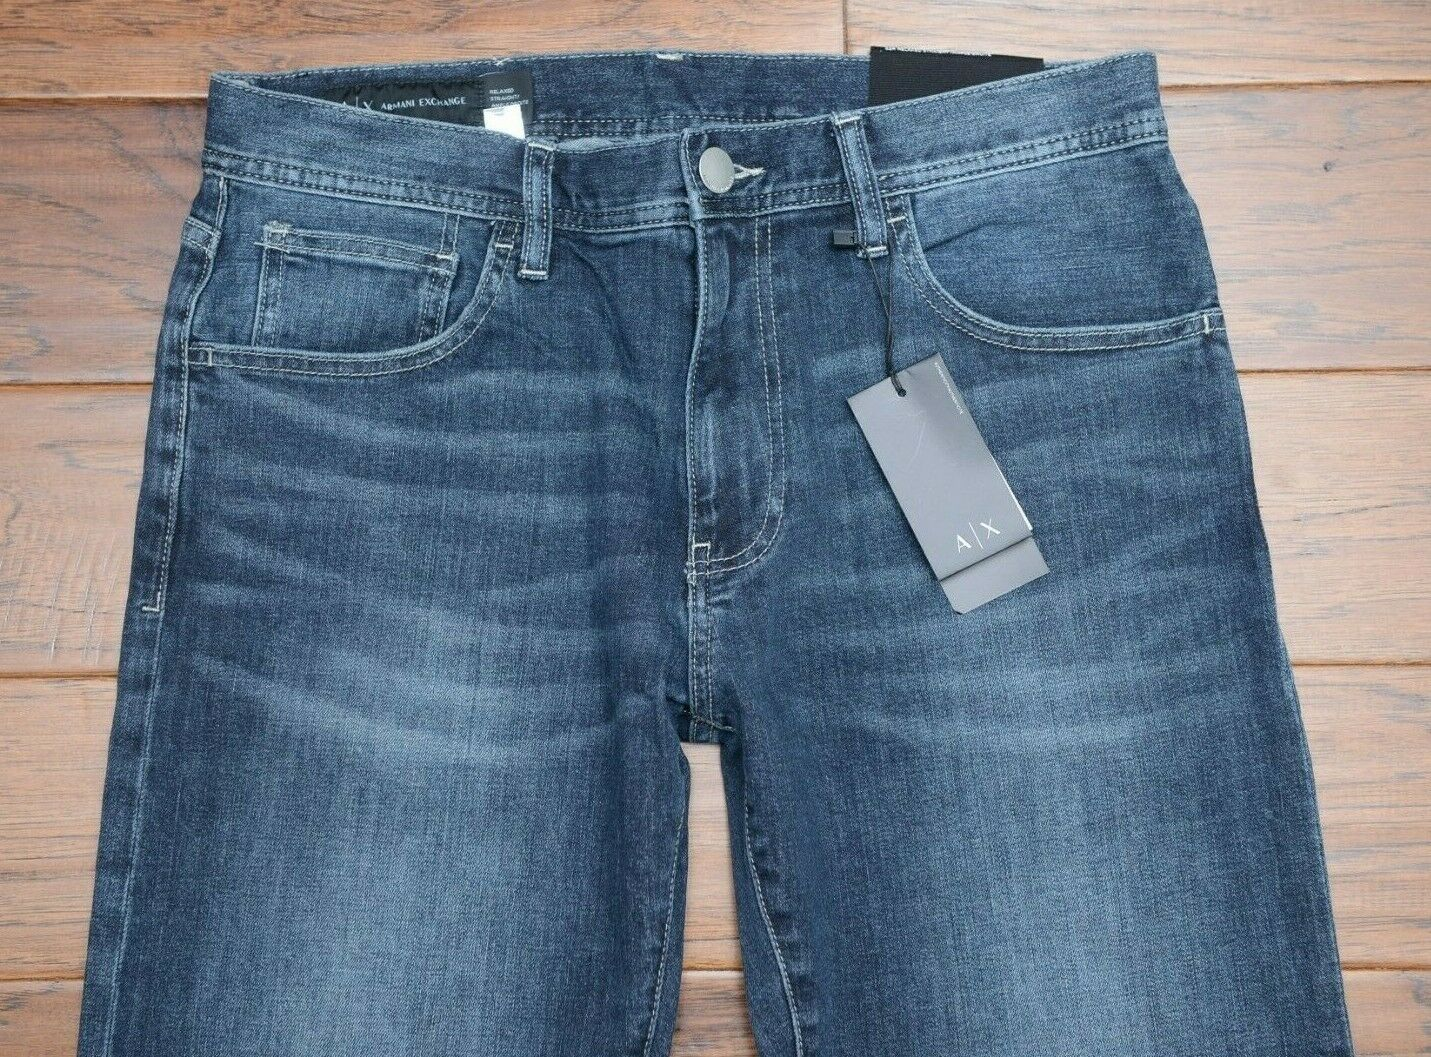 Armani Exchange A X Men's Relaxed Straight Fit Stretch Cotton DK bluee Jeans 32